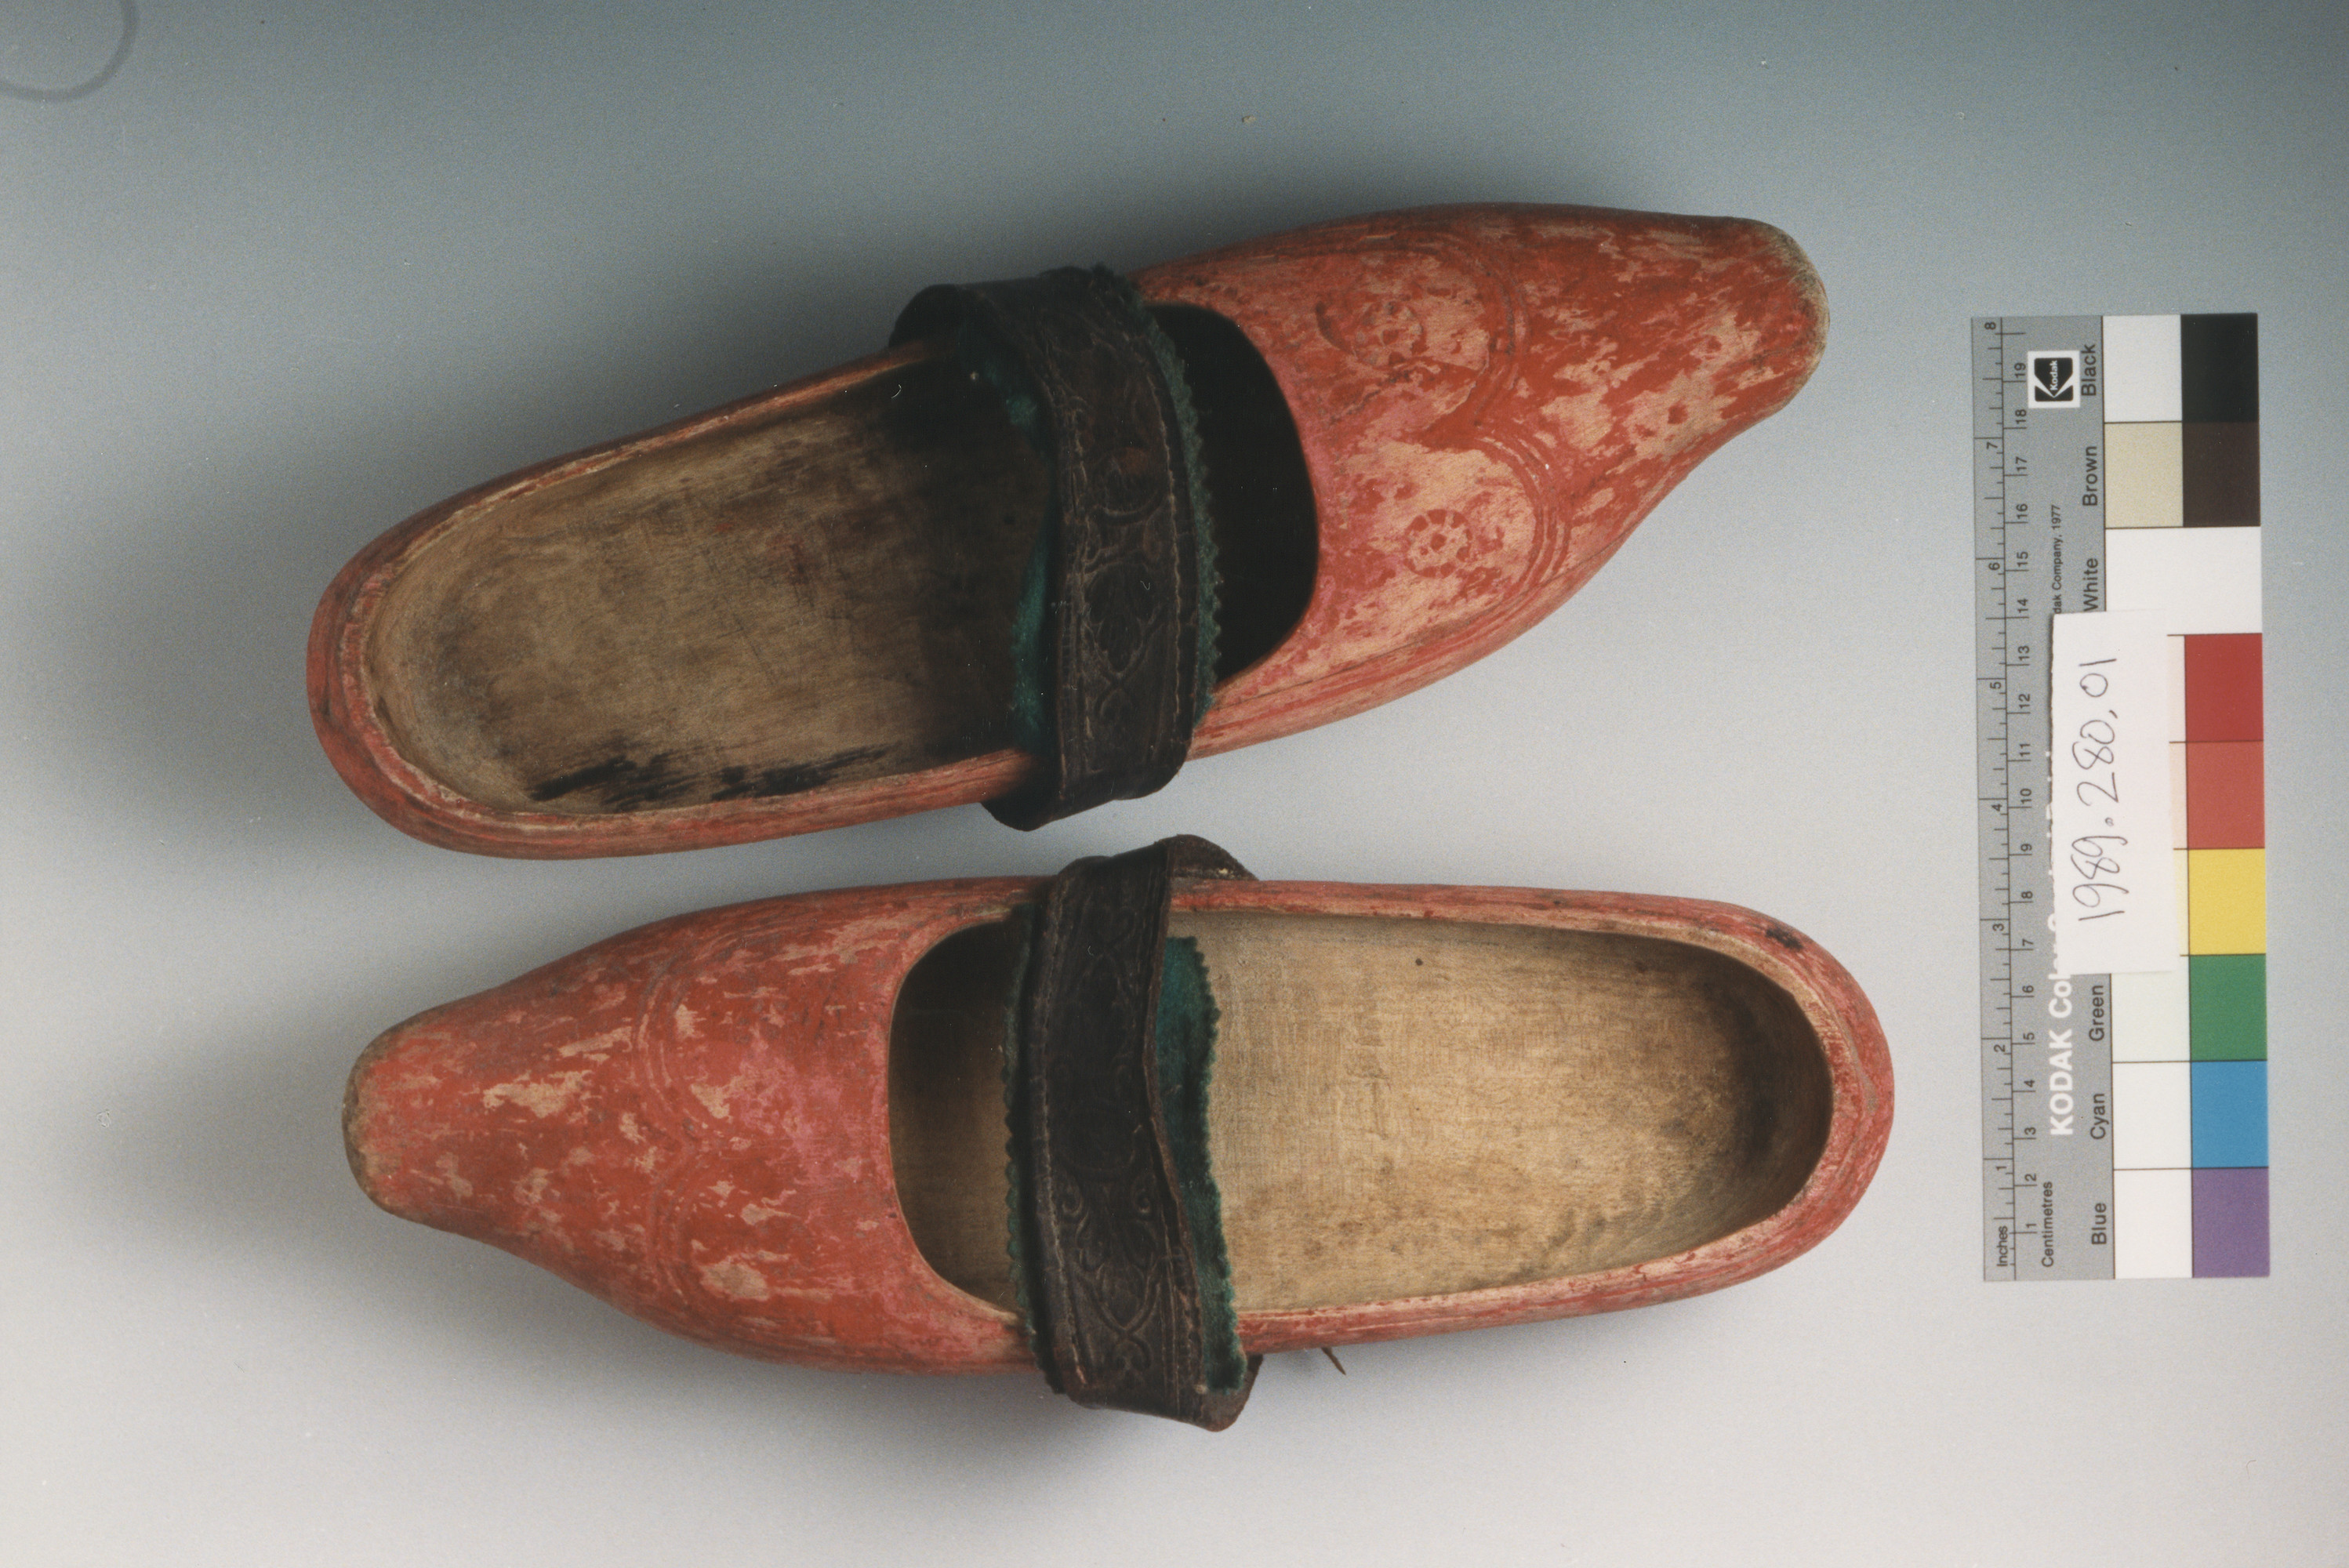 A pair of red wooden clogs similar to those worn by most residents of Le Chambon-sur-Lignon, France, as the war wore on and shoes became harder to come by.  This pair of clogs was made for the donor by her father, Samuel Heritier, who had learned a variety of useful crafts from his own father during WWI.  Unlike the clogs worn during the war by the older residents, that were blackened and then polished, the donor's clogs were tinted a bright red, as was the fashion among the young people of Le Chambon.